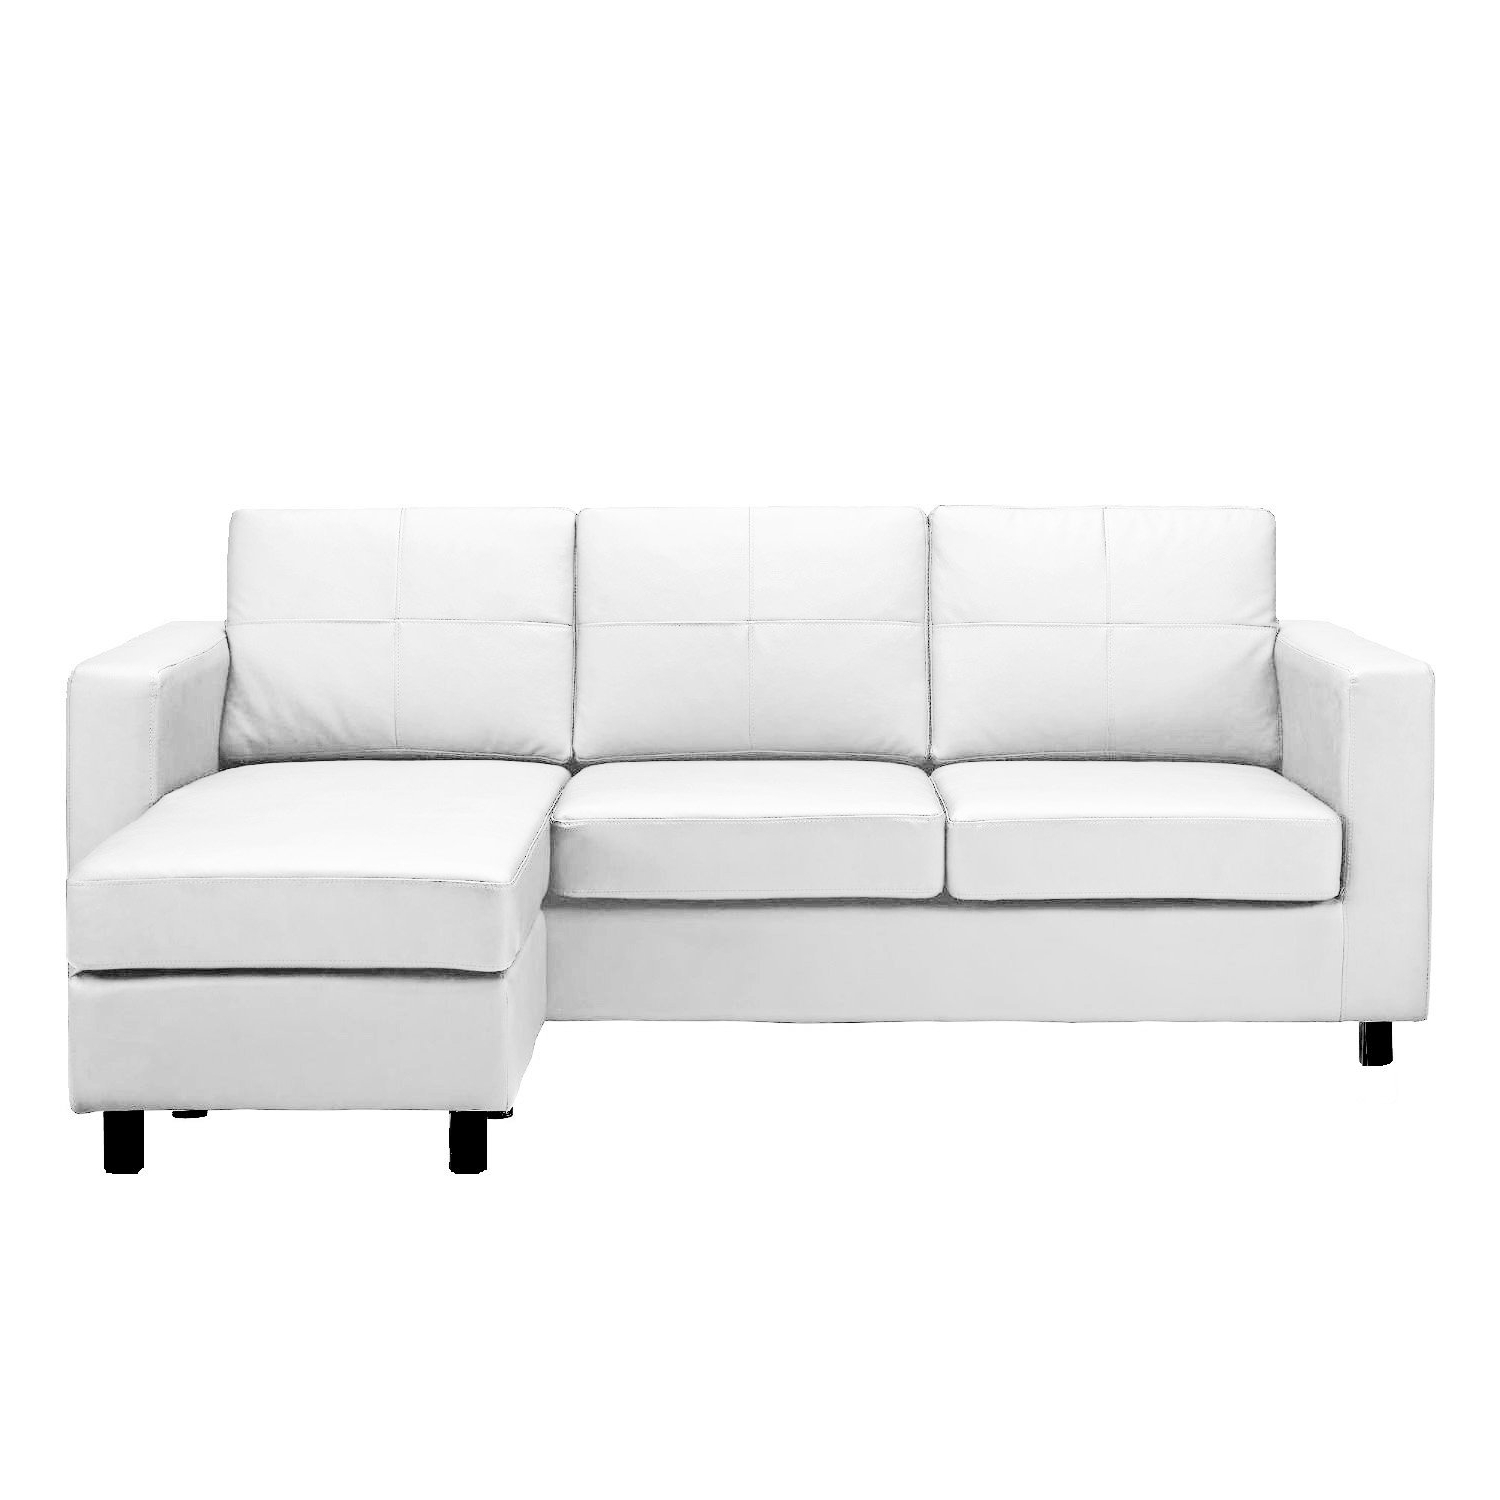 2019 Sofa : Chaise Sofa Double Chaise Sectional Leather Apartment Size For Apartment Sofas (View 17 of 20)